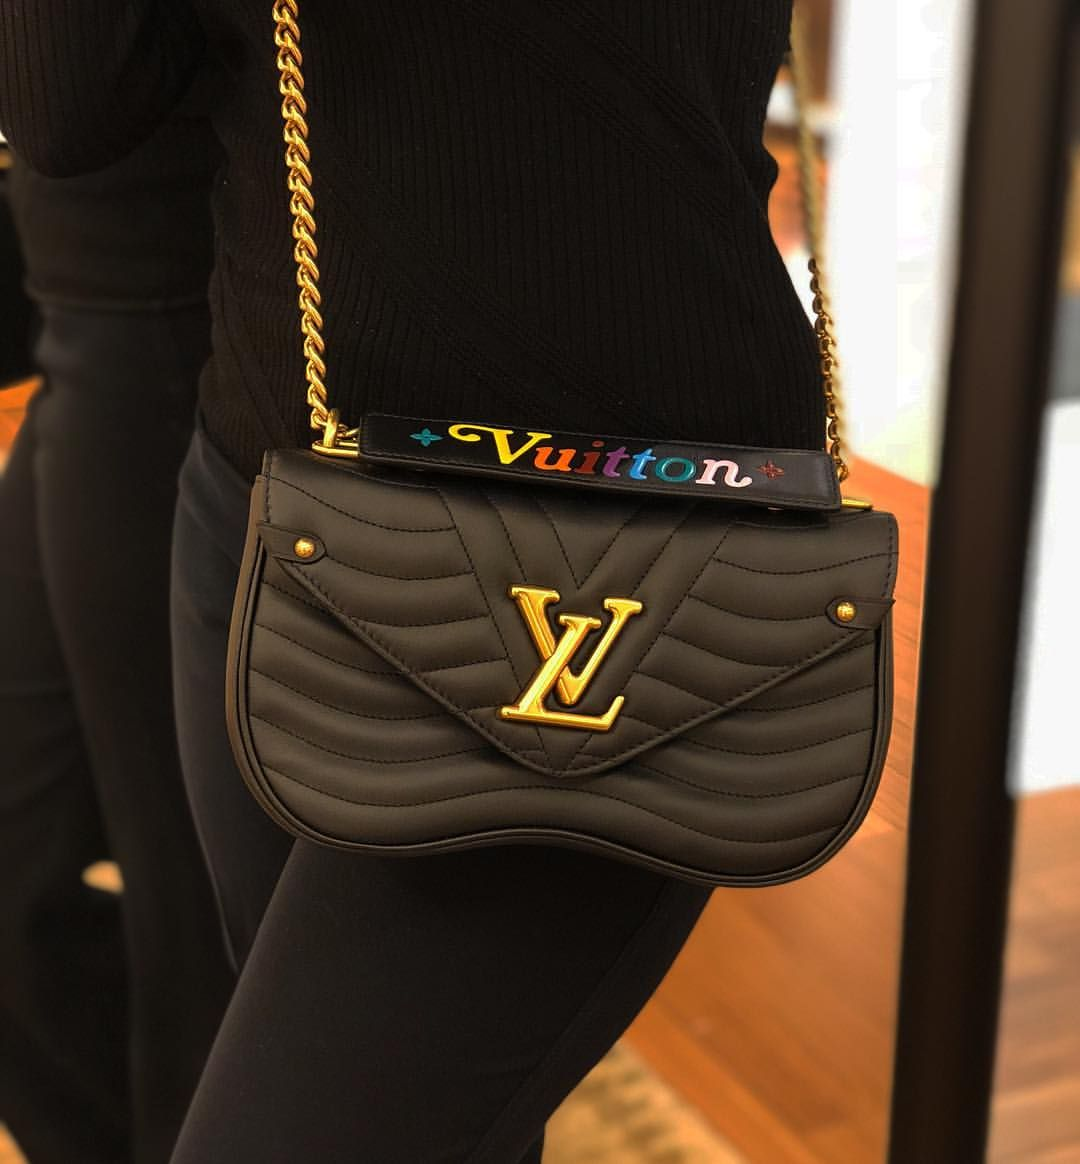 28202805ce62 Louis Vuitton New Wave Chain Bag 🌊 launches Friday